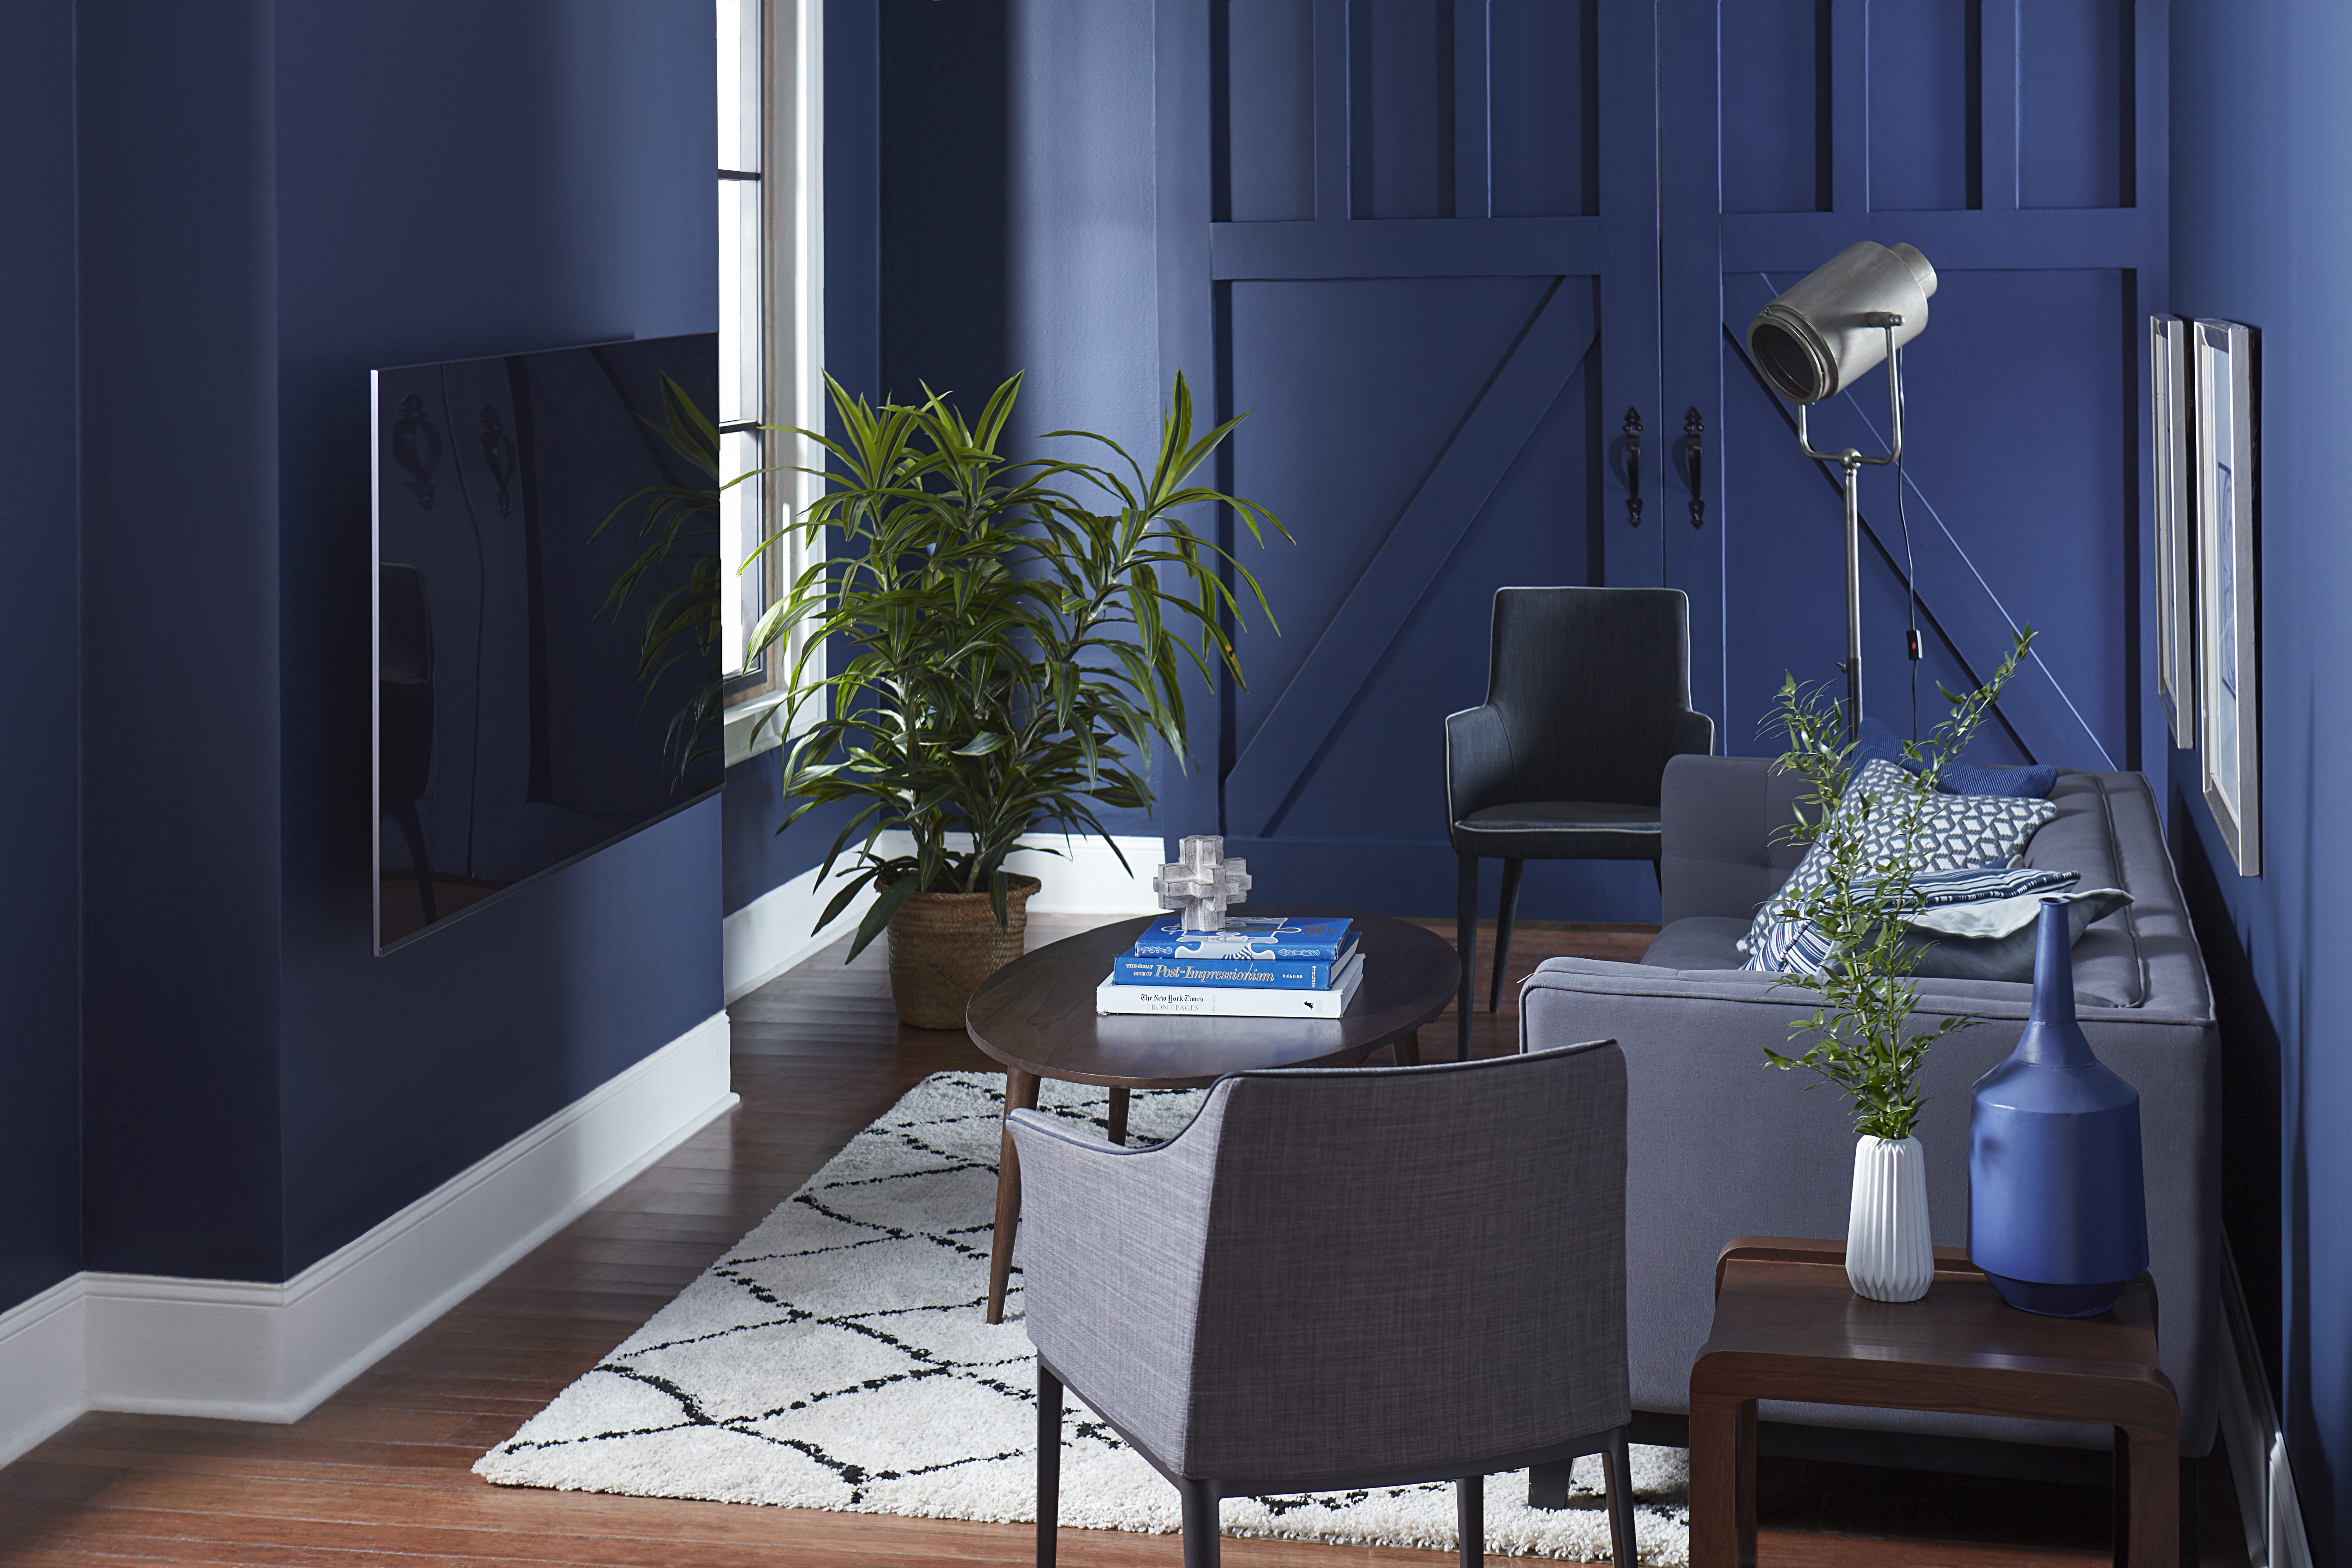 Proof That Dark Wall Colors Can Work in Small Spaces